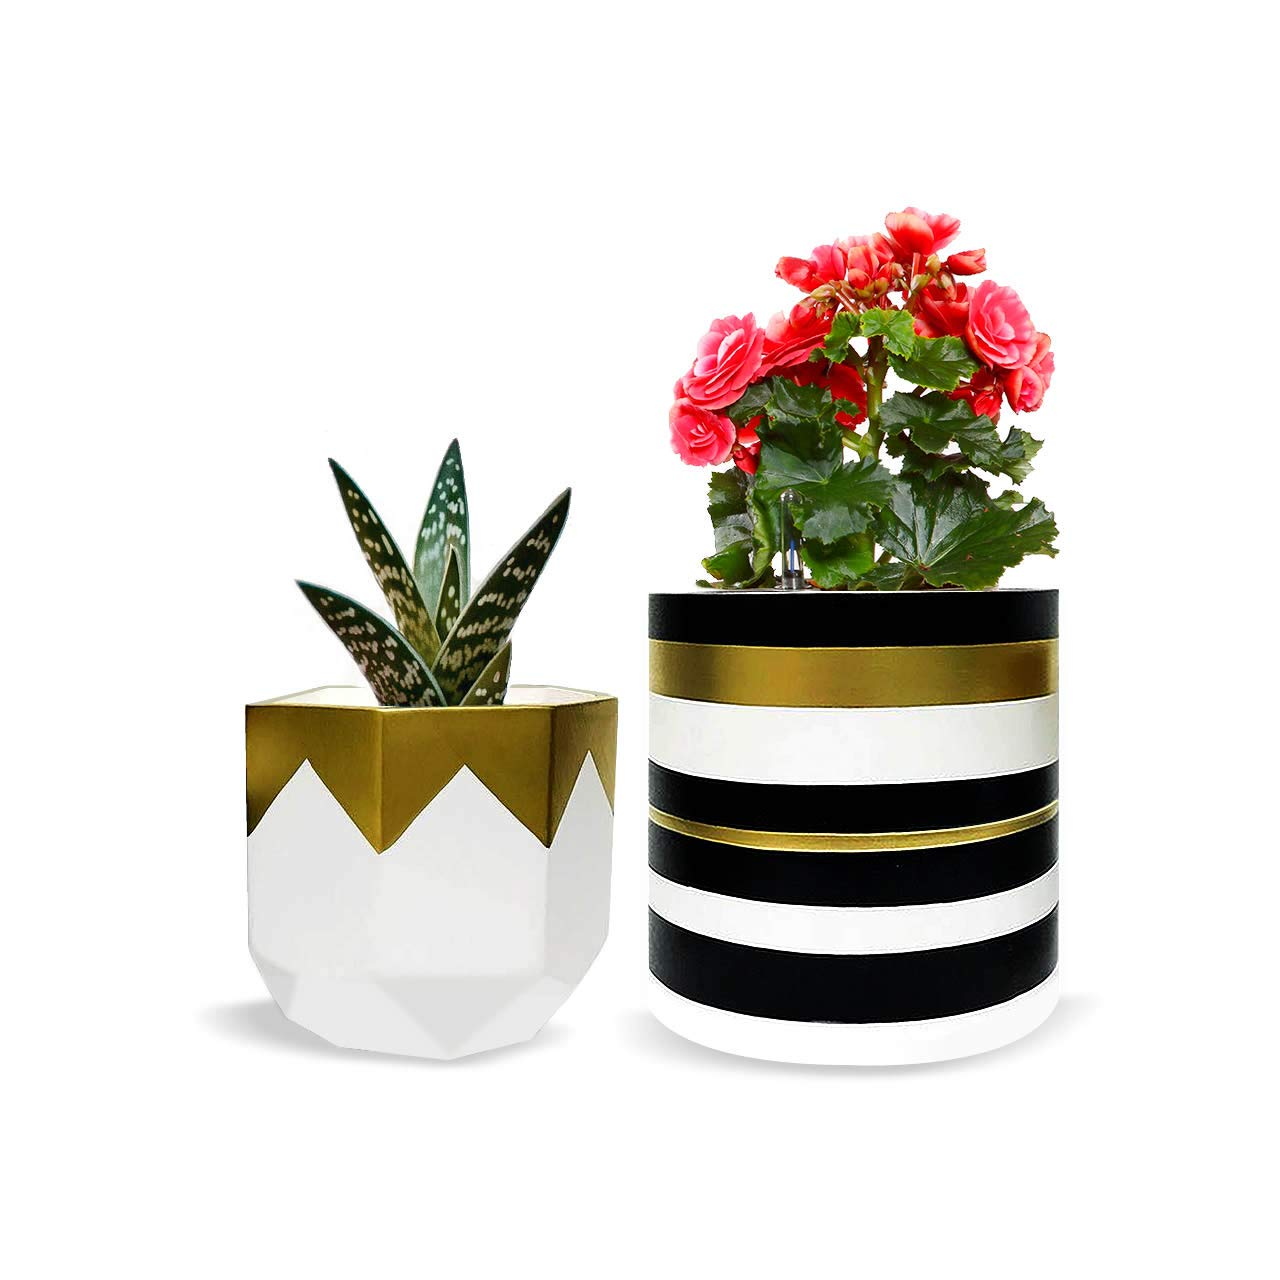 c21039a702f418 Pack of 2 White Pretty Ceramic Flower Pots Garden Succulent Cactus Planter  with Drainage Hole